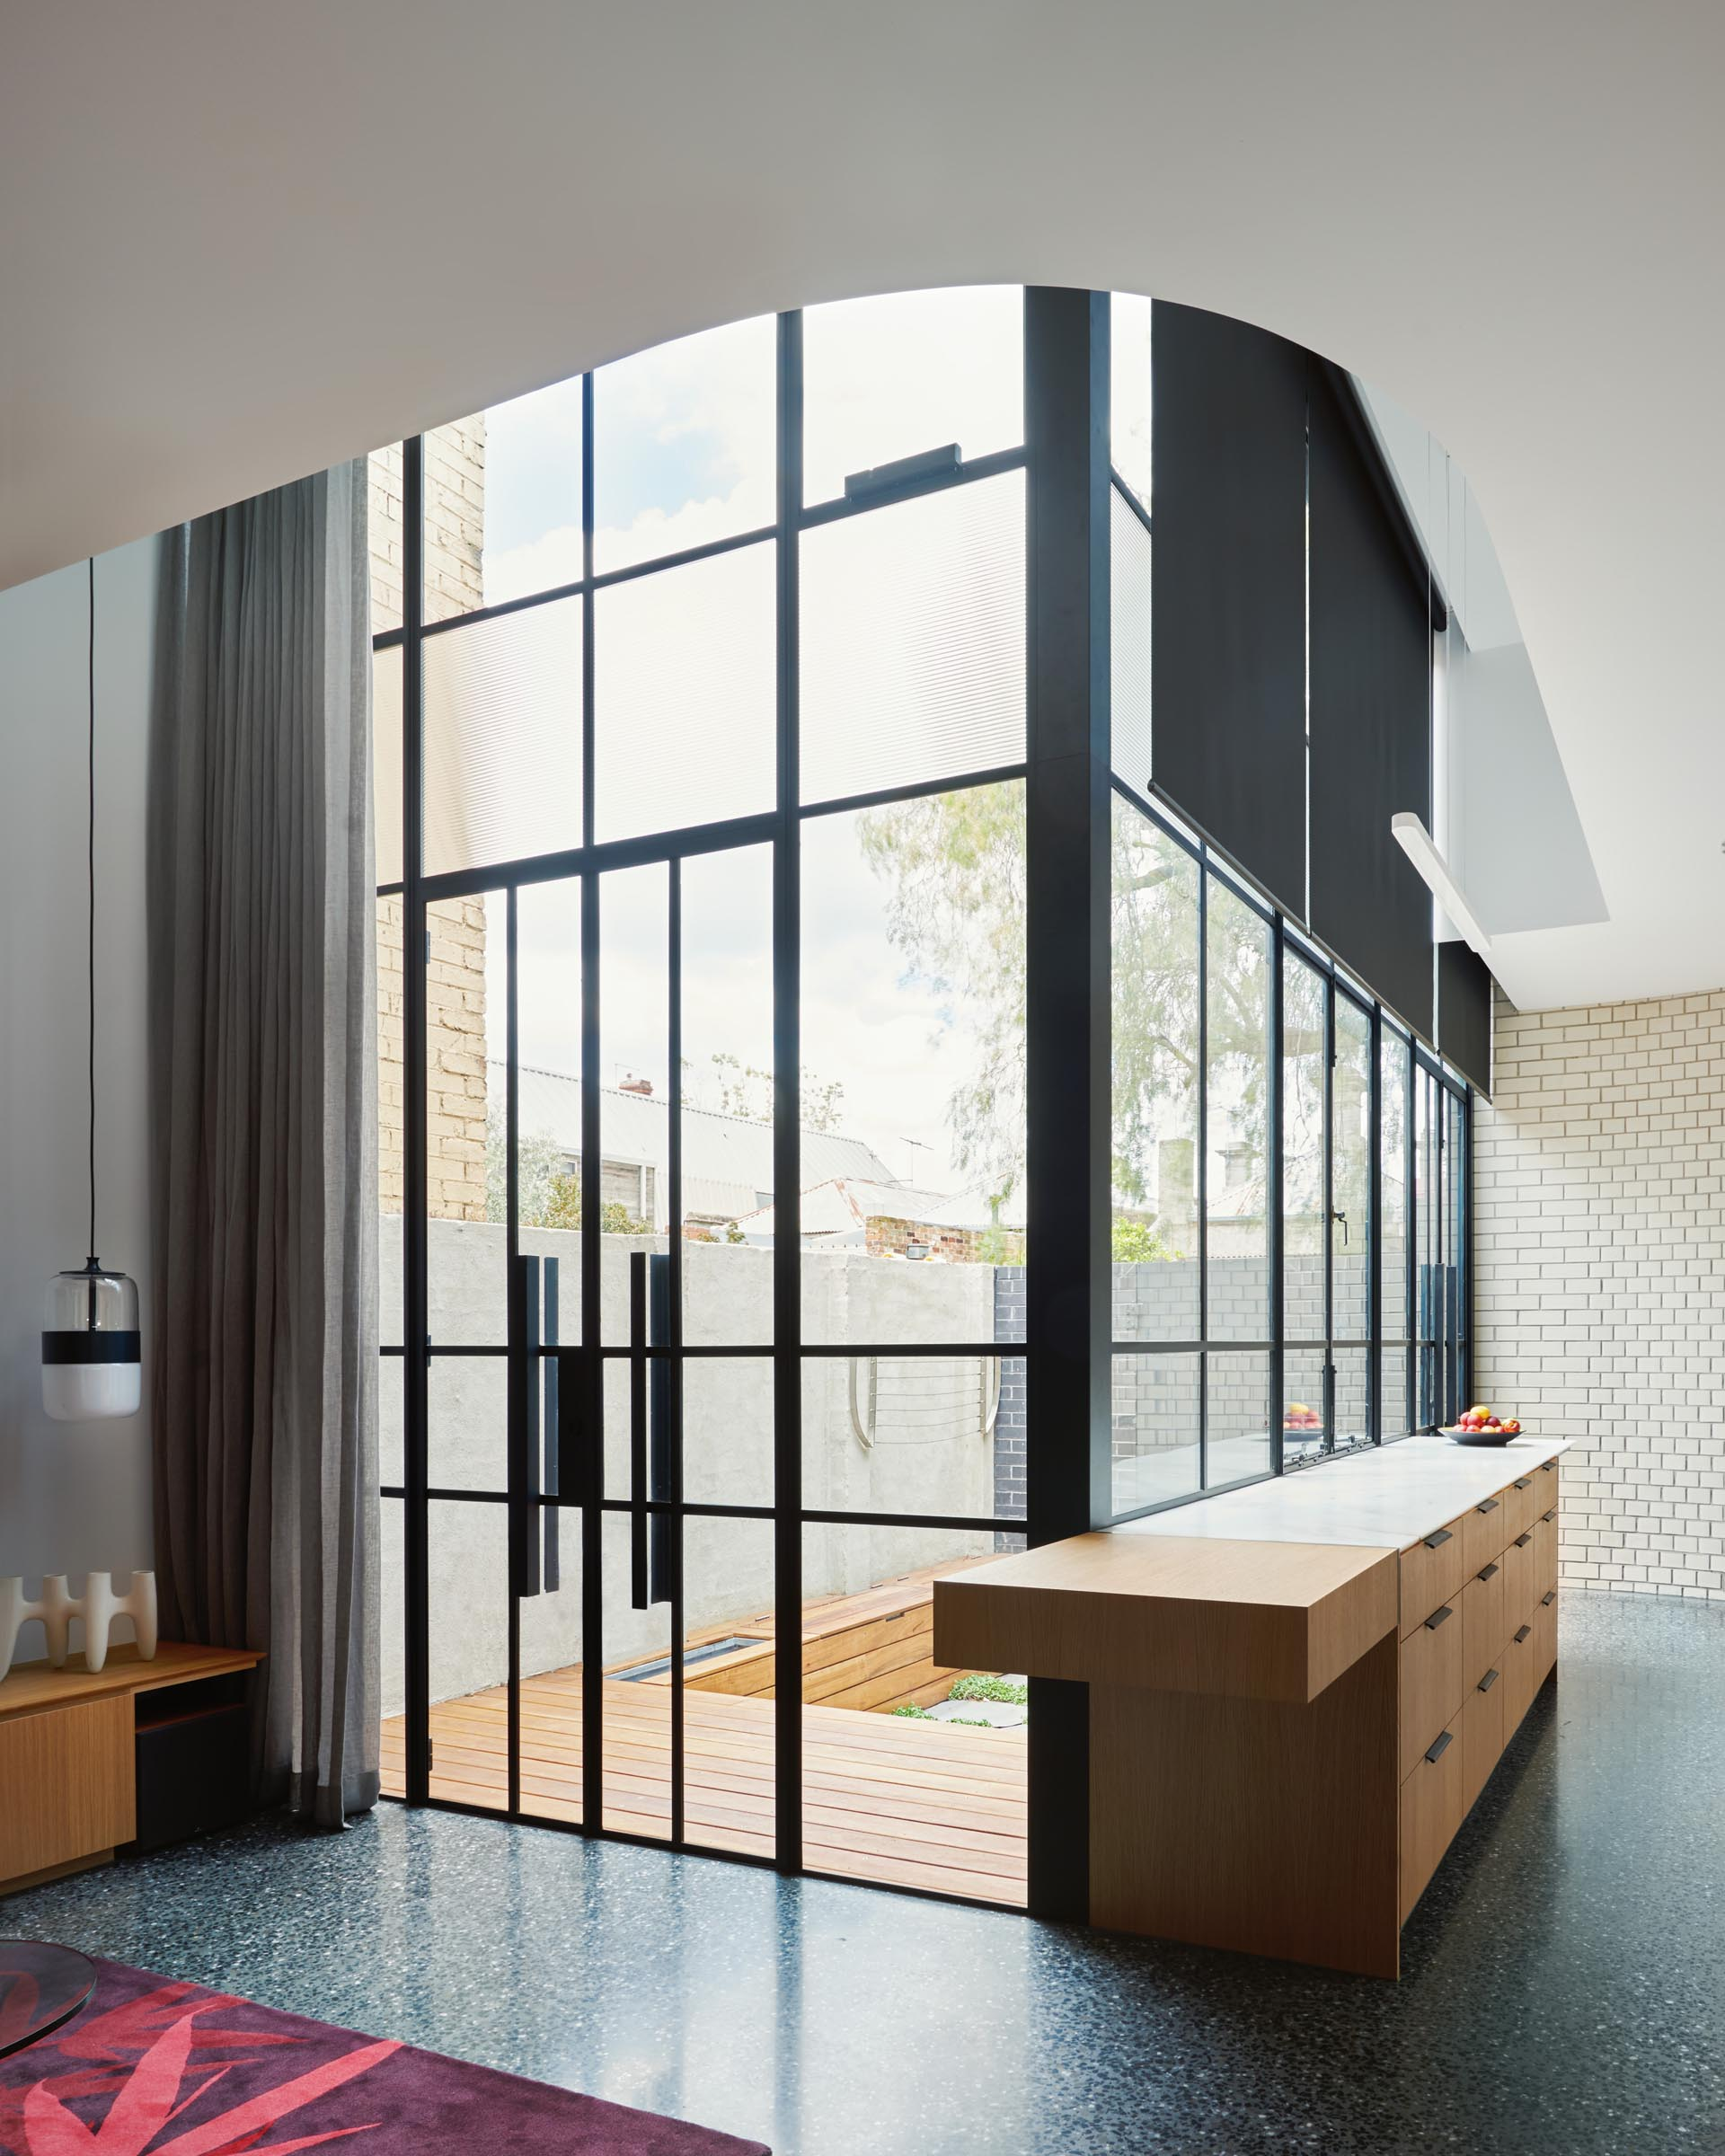 Black framed glass doors which blend into the glass walls, help to create an abundance of natural light that filters through to the interior.